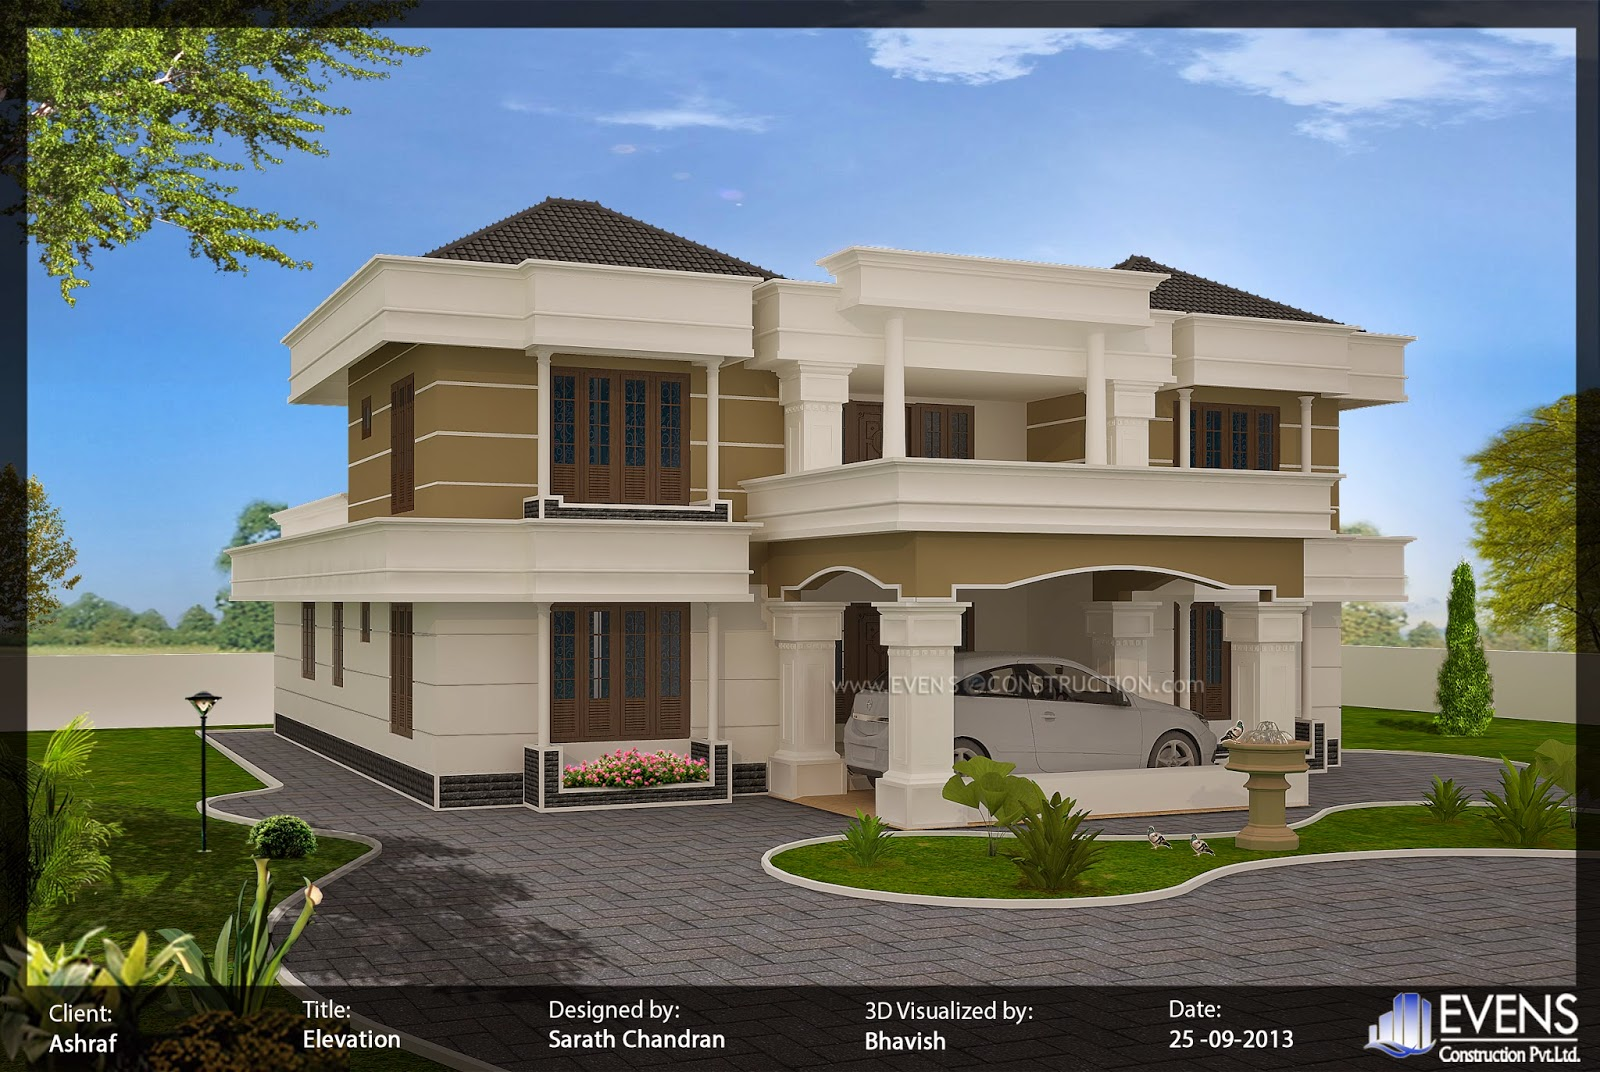 Evens construction pvt ltd modern house design for Exterior house designs indian style